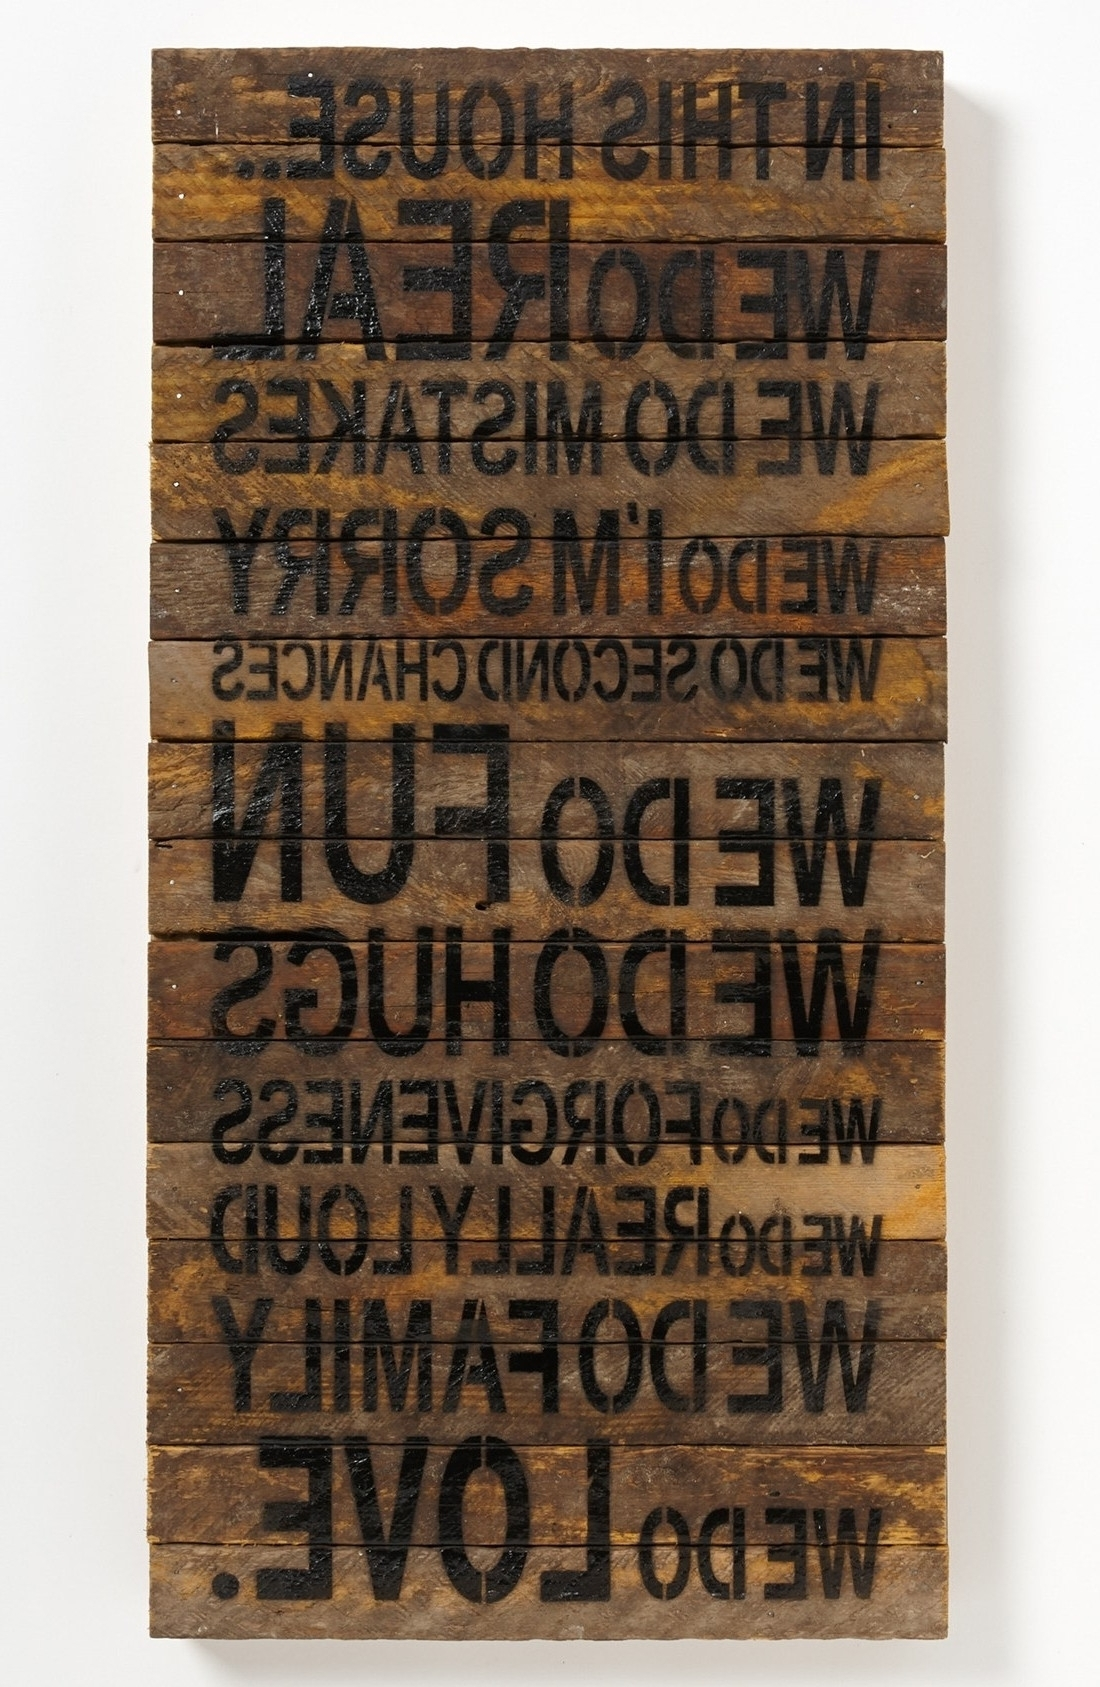 View S Of Wooden Wall Art Quotes Showing 5 Of 15 S Inspiration Of intended for Most Popular Wood Wall Art Quotes